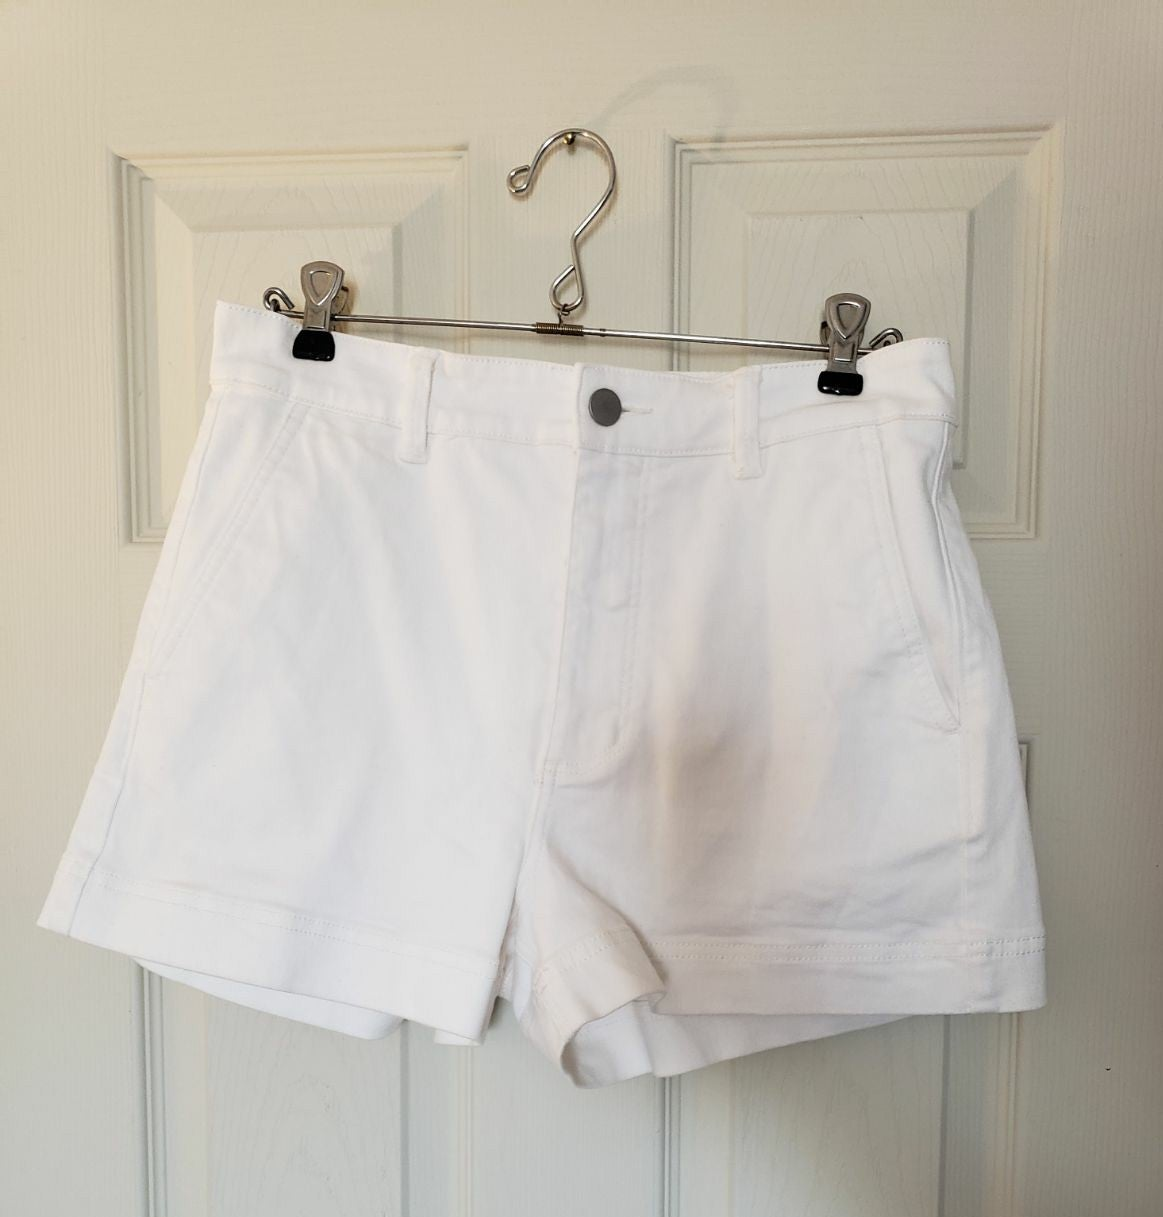 Everlane White Shorts Size 6